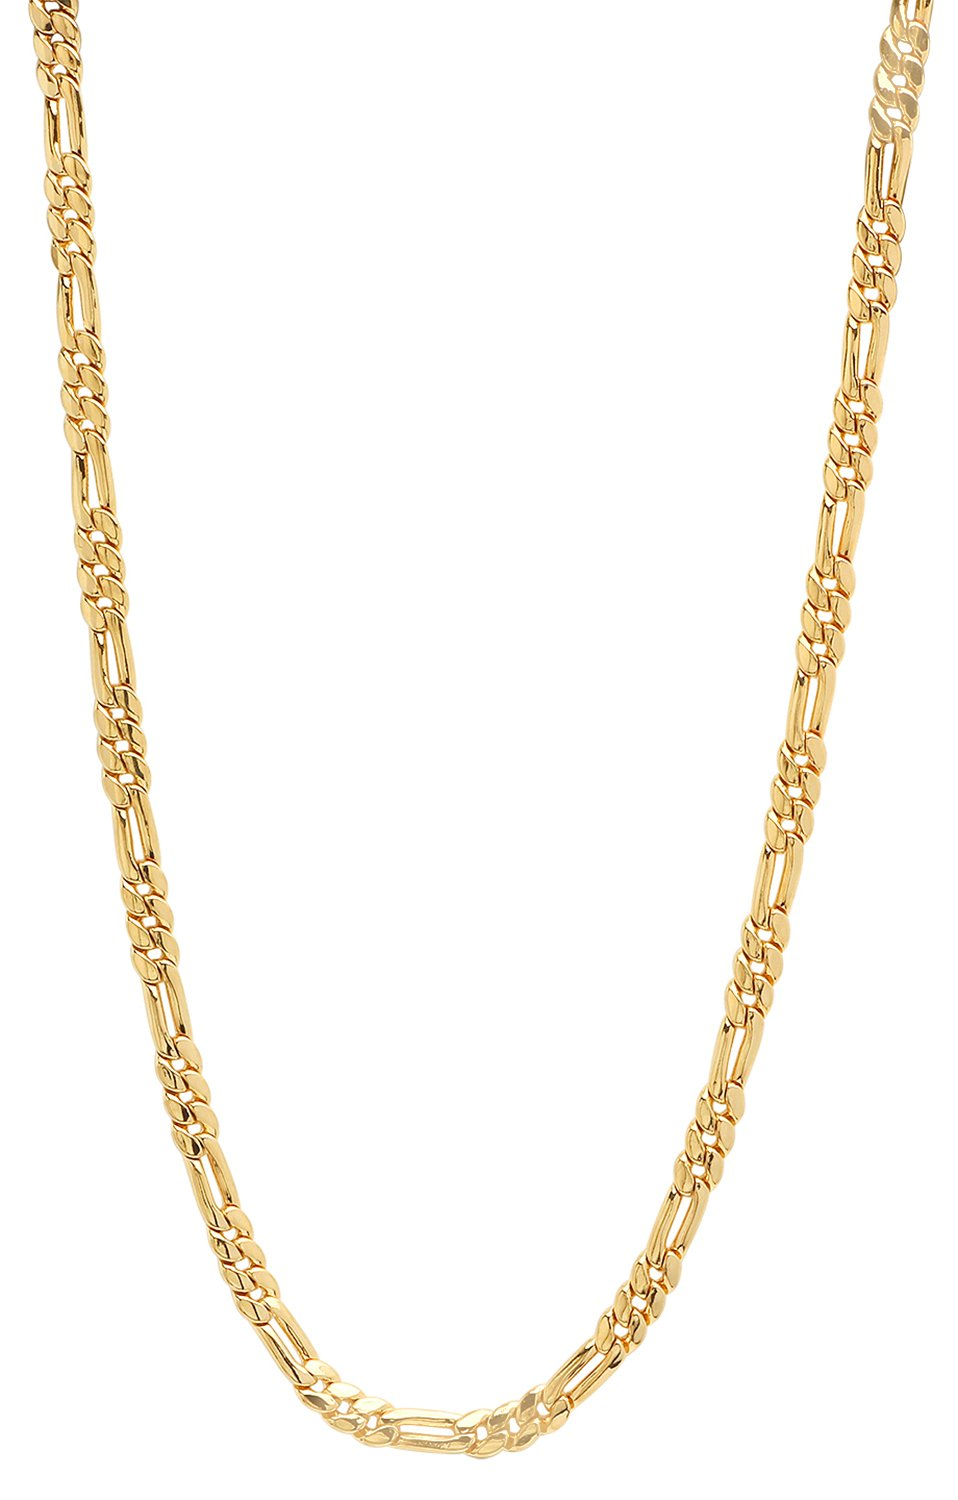 The Bling Factory 4.1mm 25 Mills 14k Gold Plated Figaro Link Chain Necklace, 16 inches